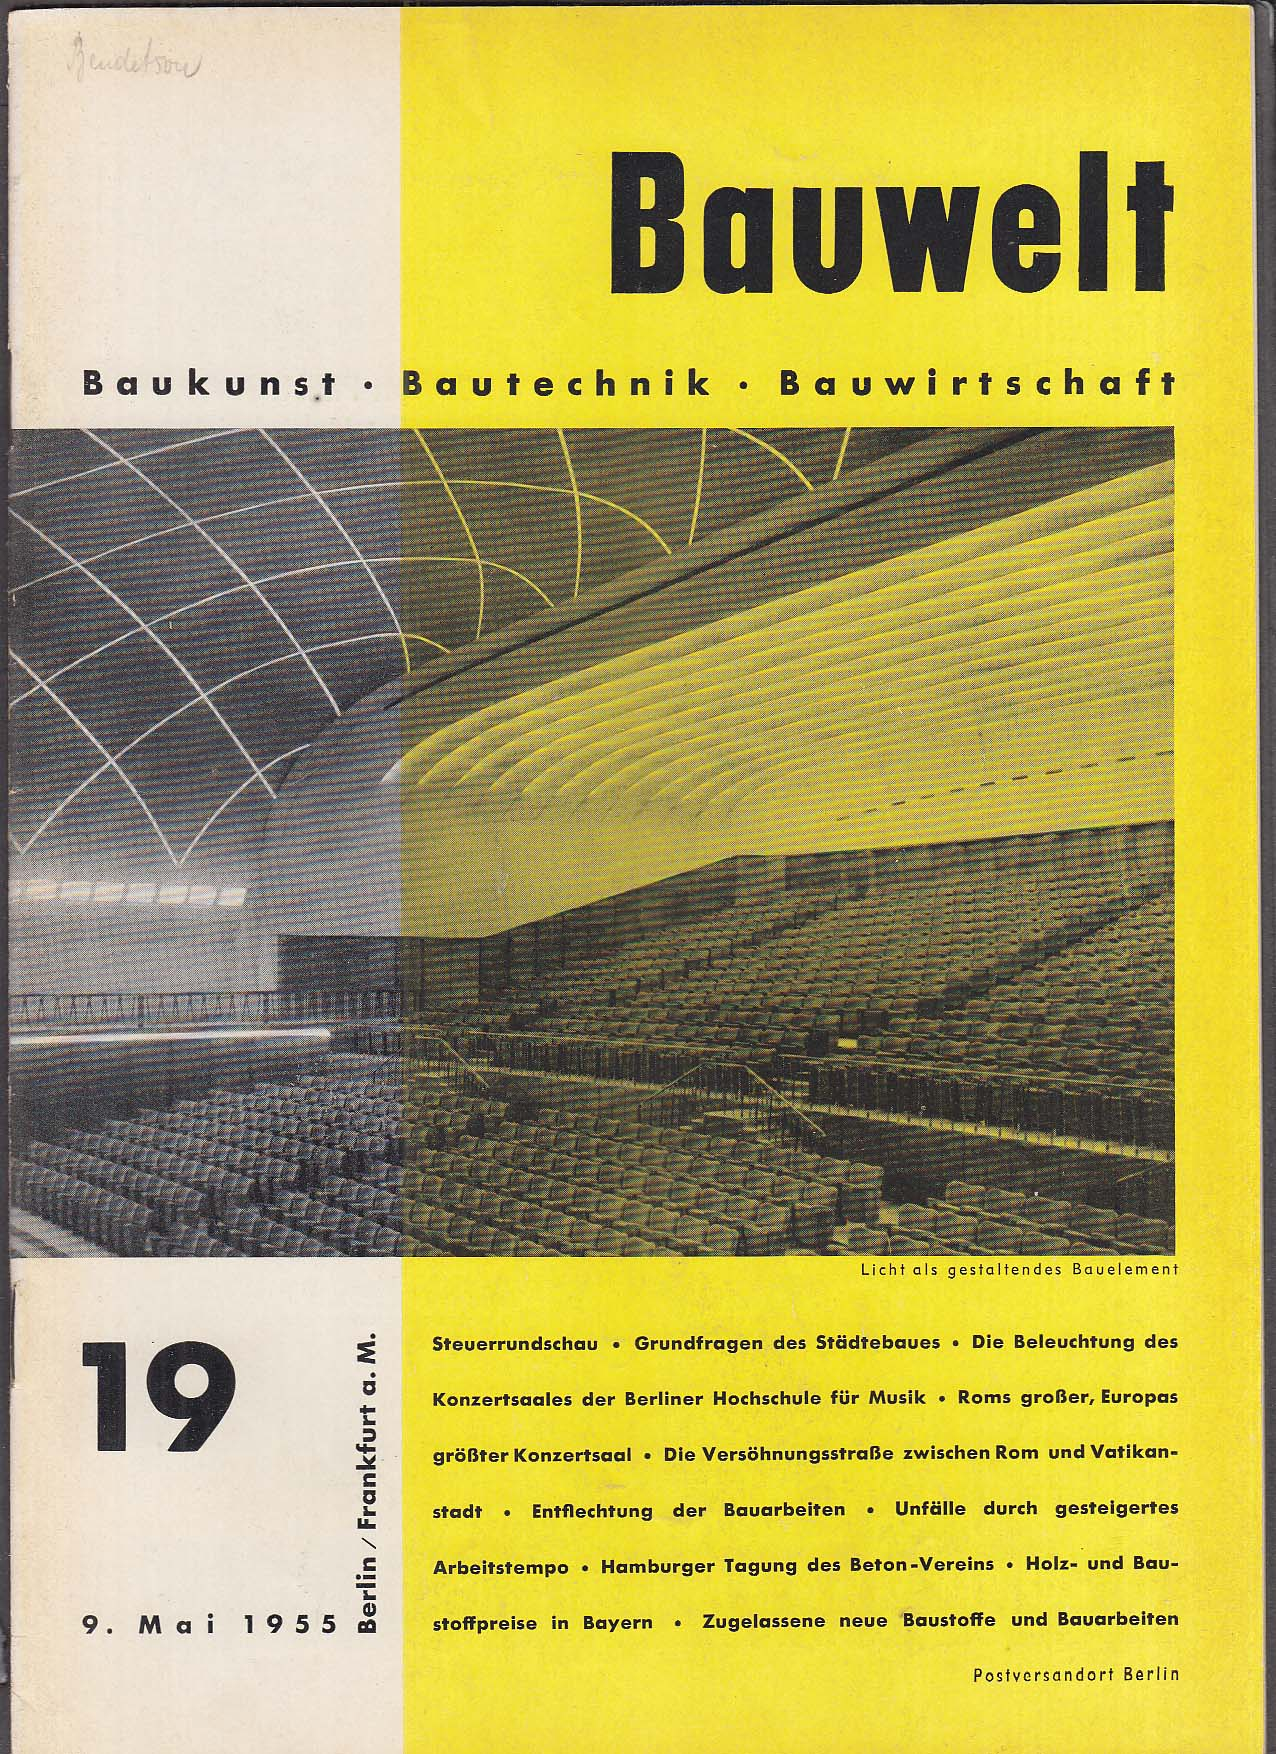 Bauwelt German architecture magazine 5/9/1955 19